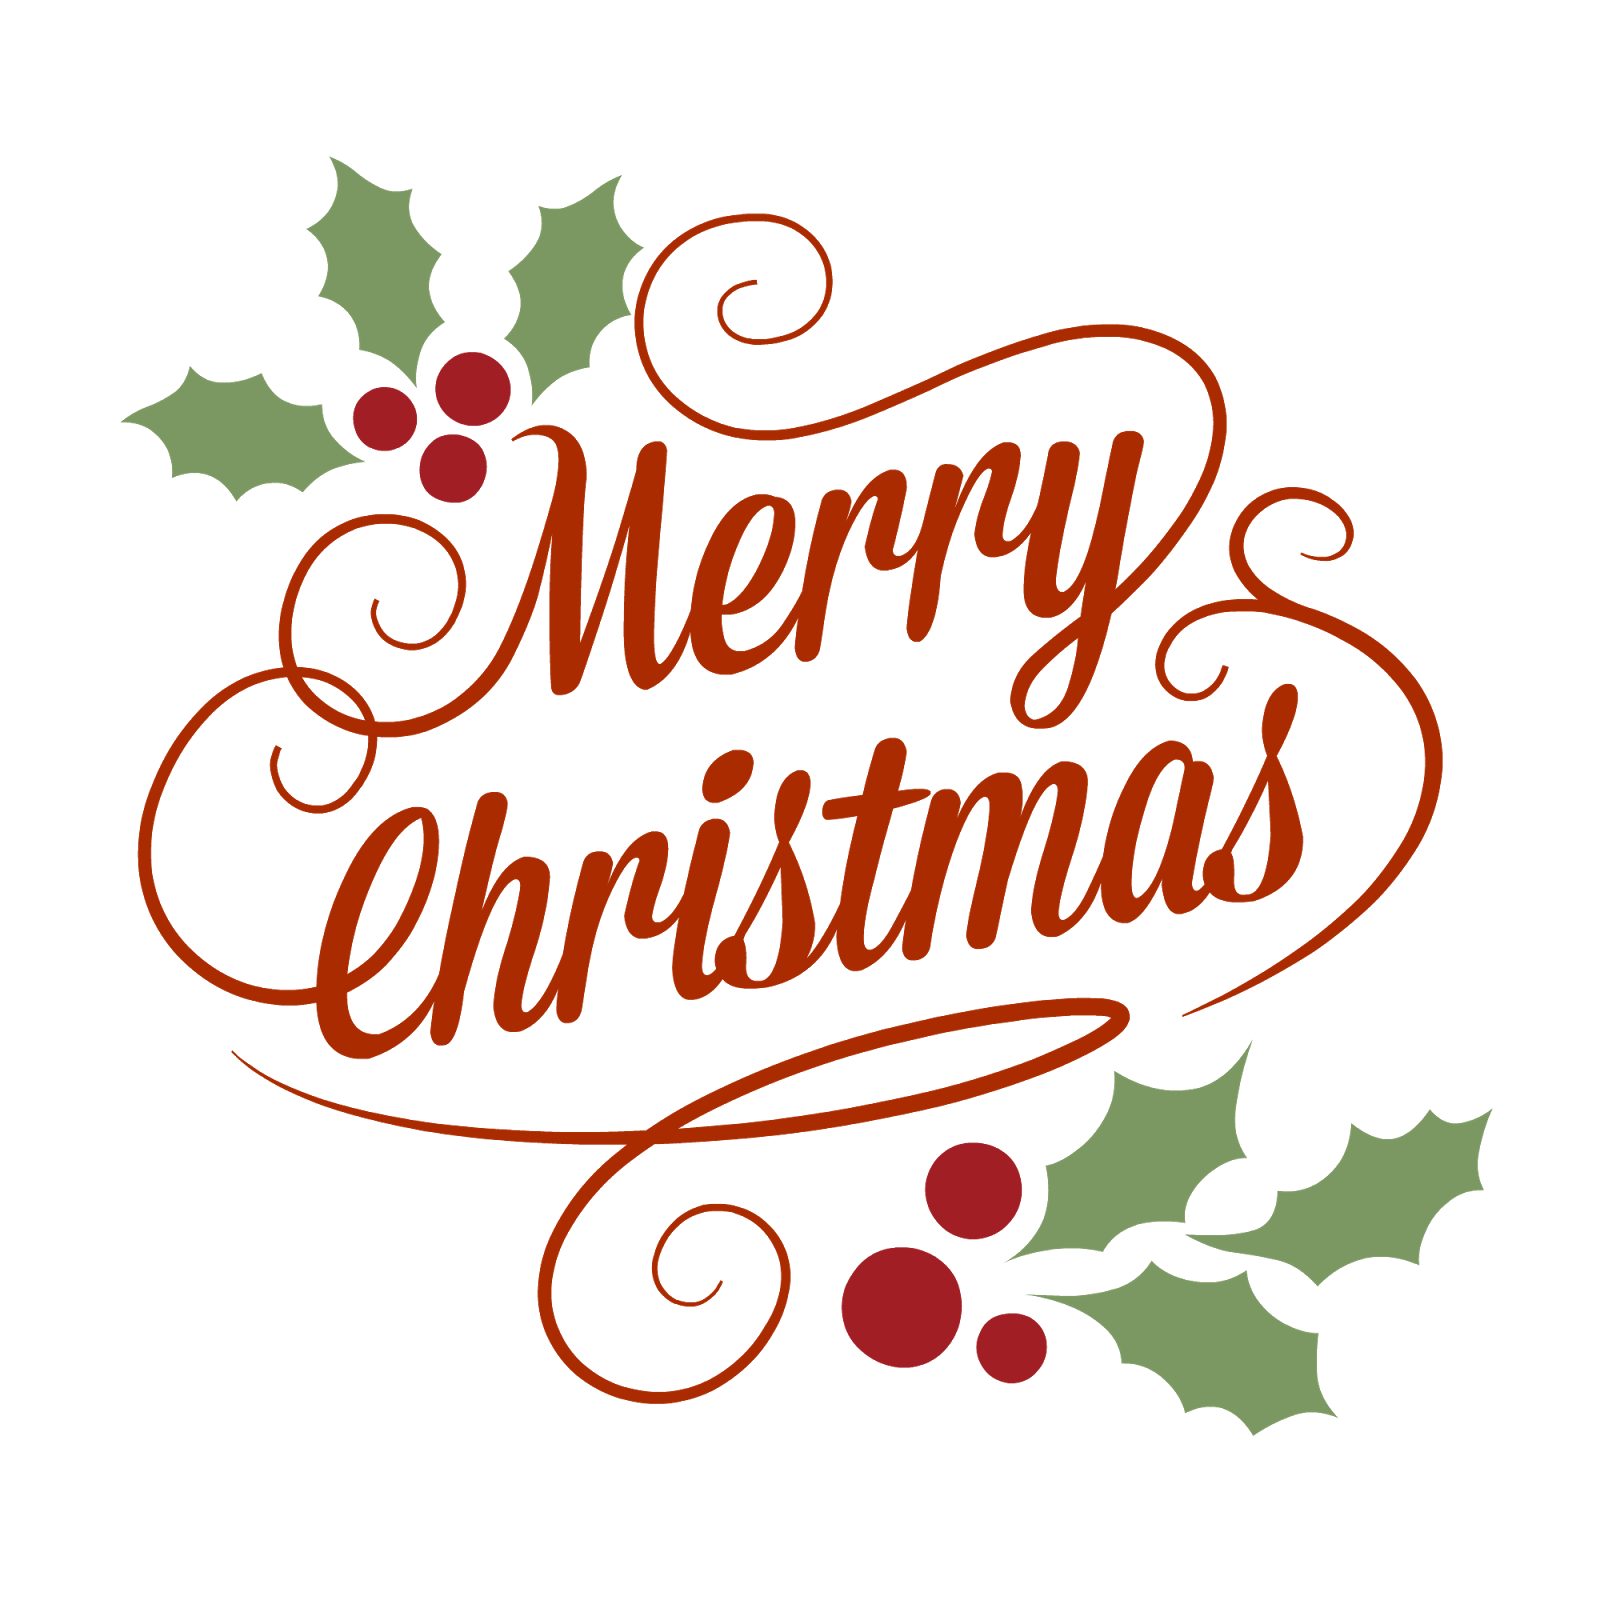 Merry Christmas Classical Vintage Sign transparent PNG - StickPNG